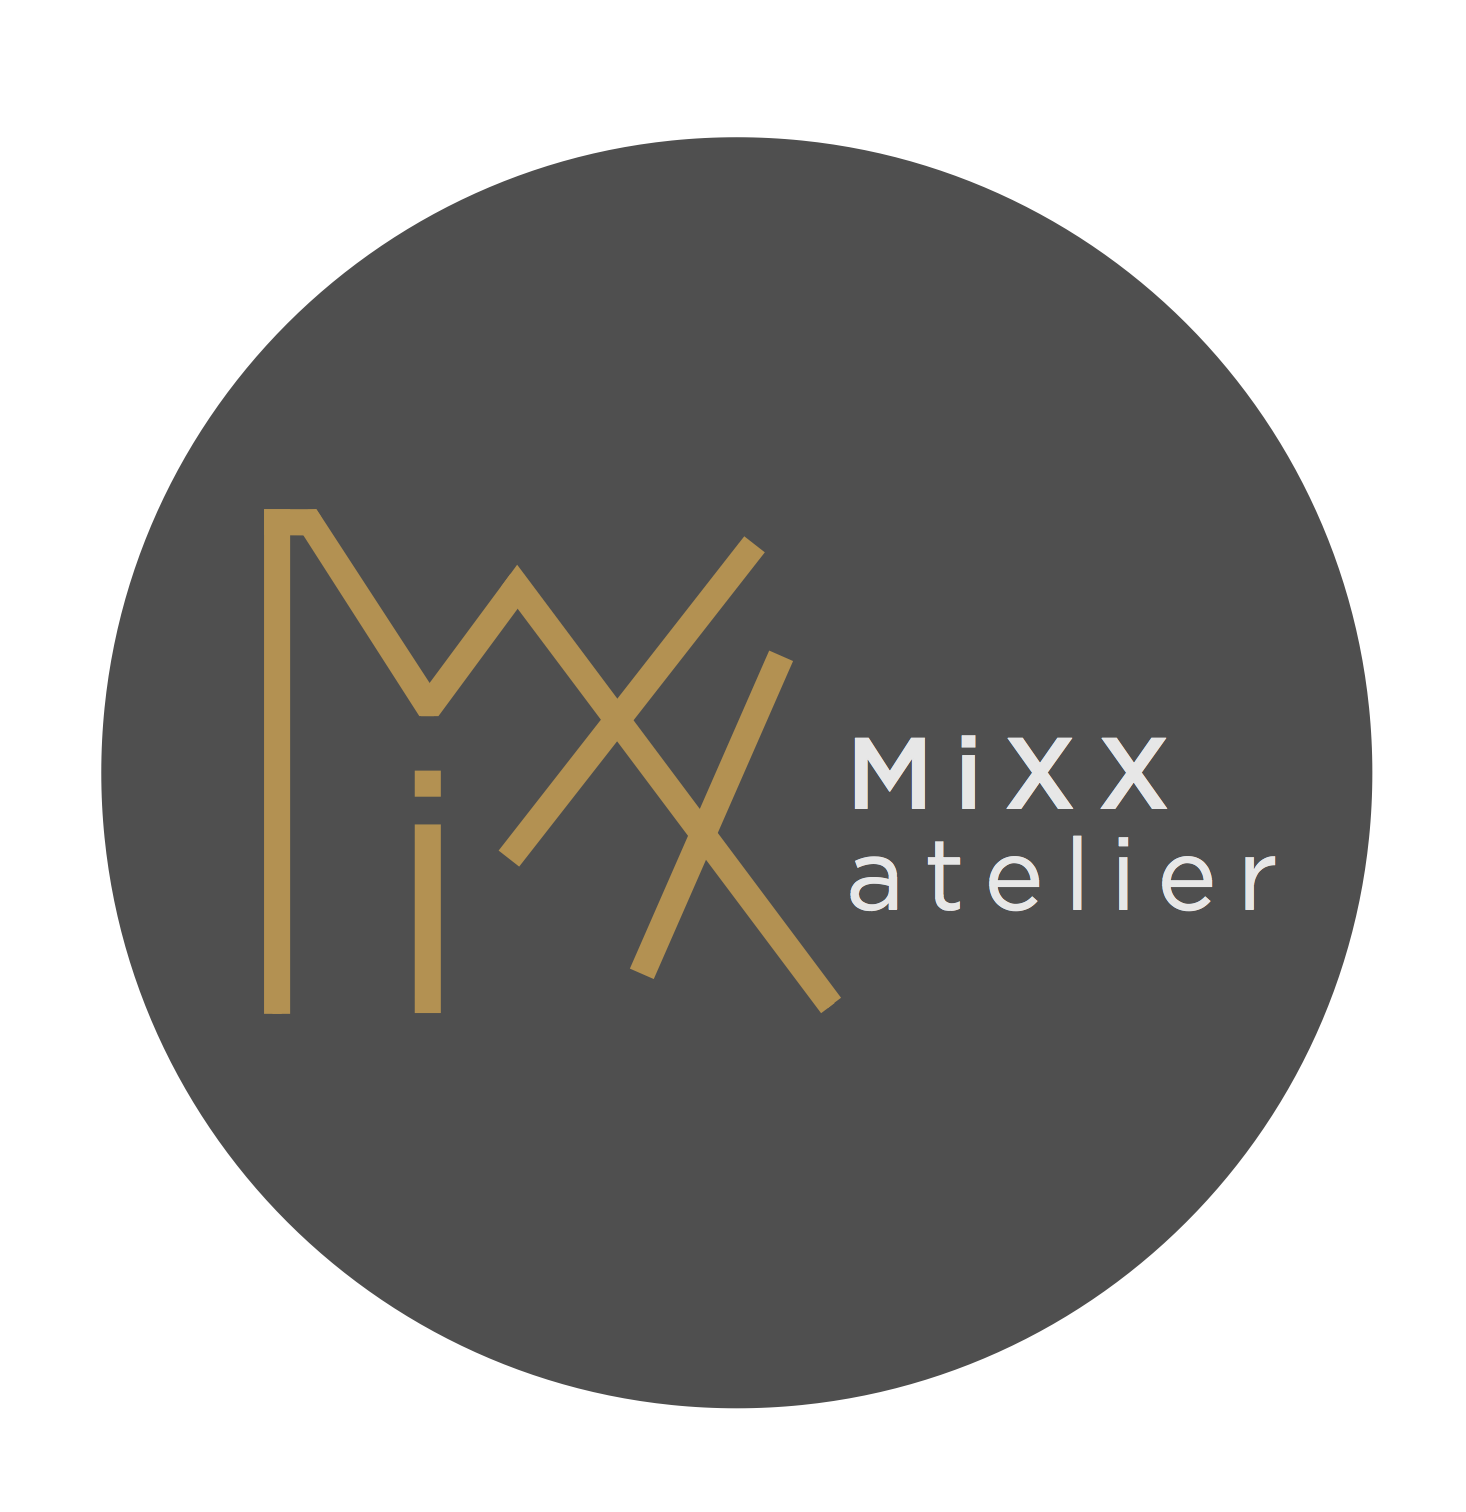 MiXX projects + atelier